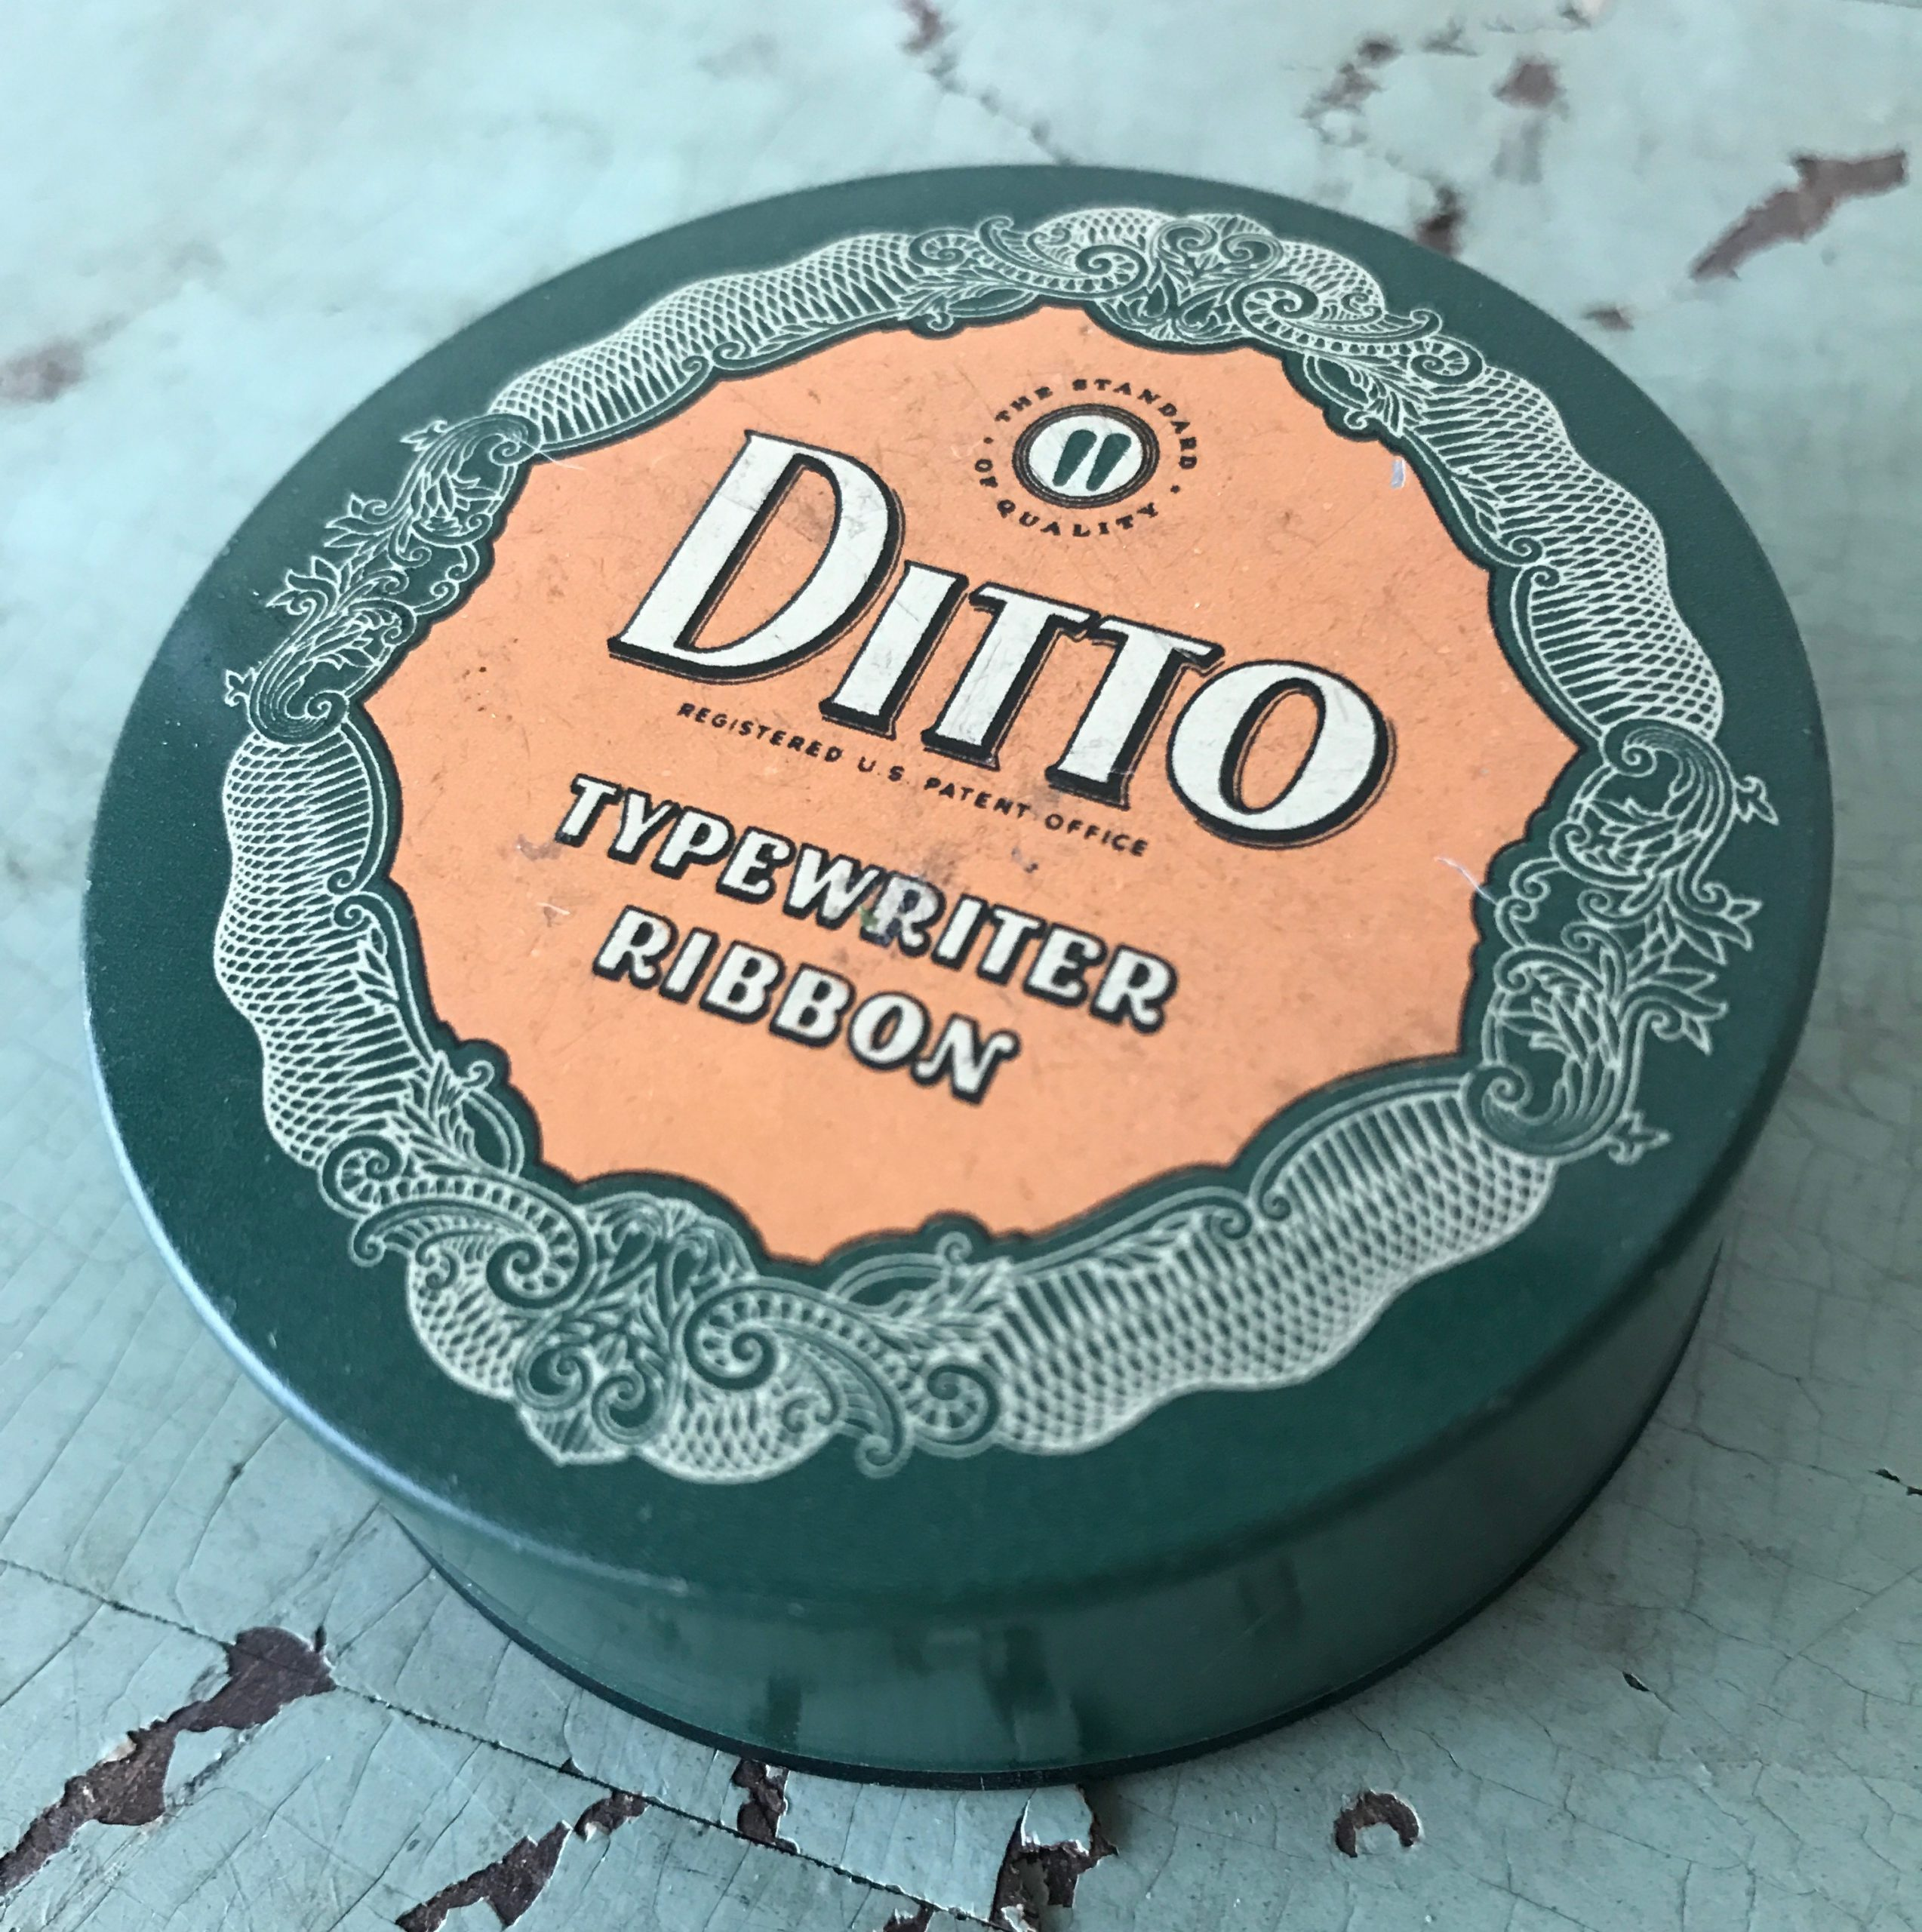 Ditto Inc. Typewriter Ribbon